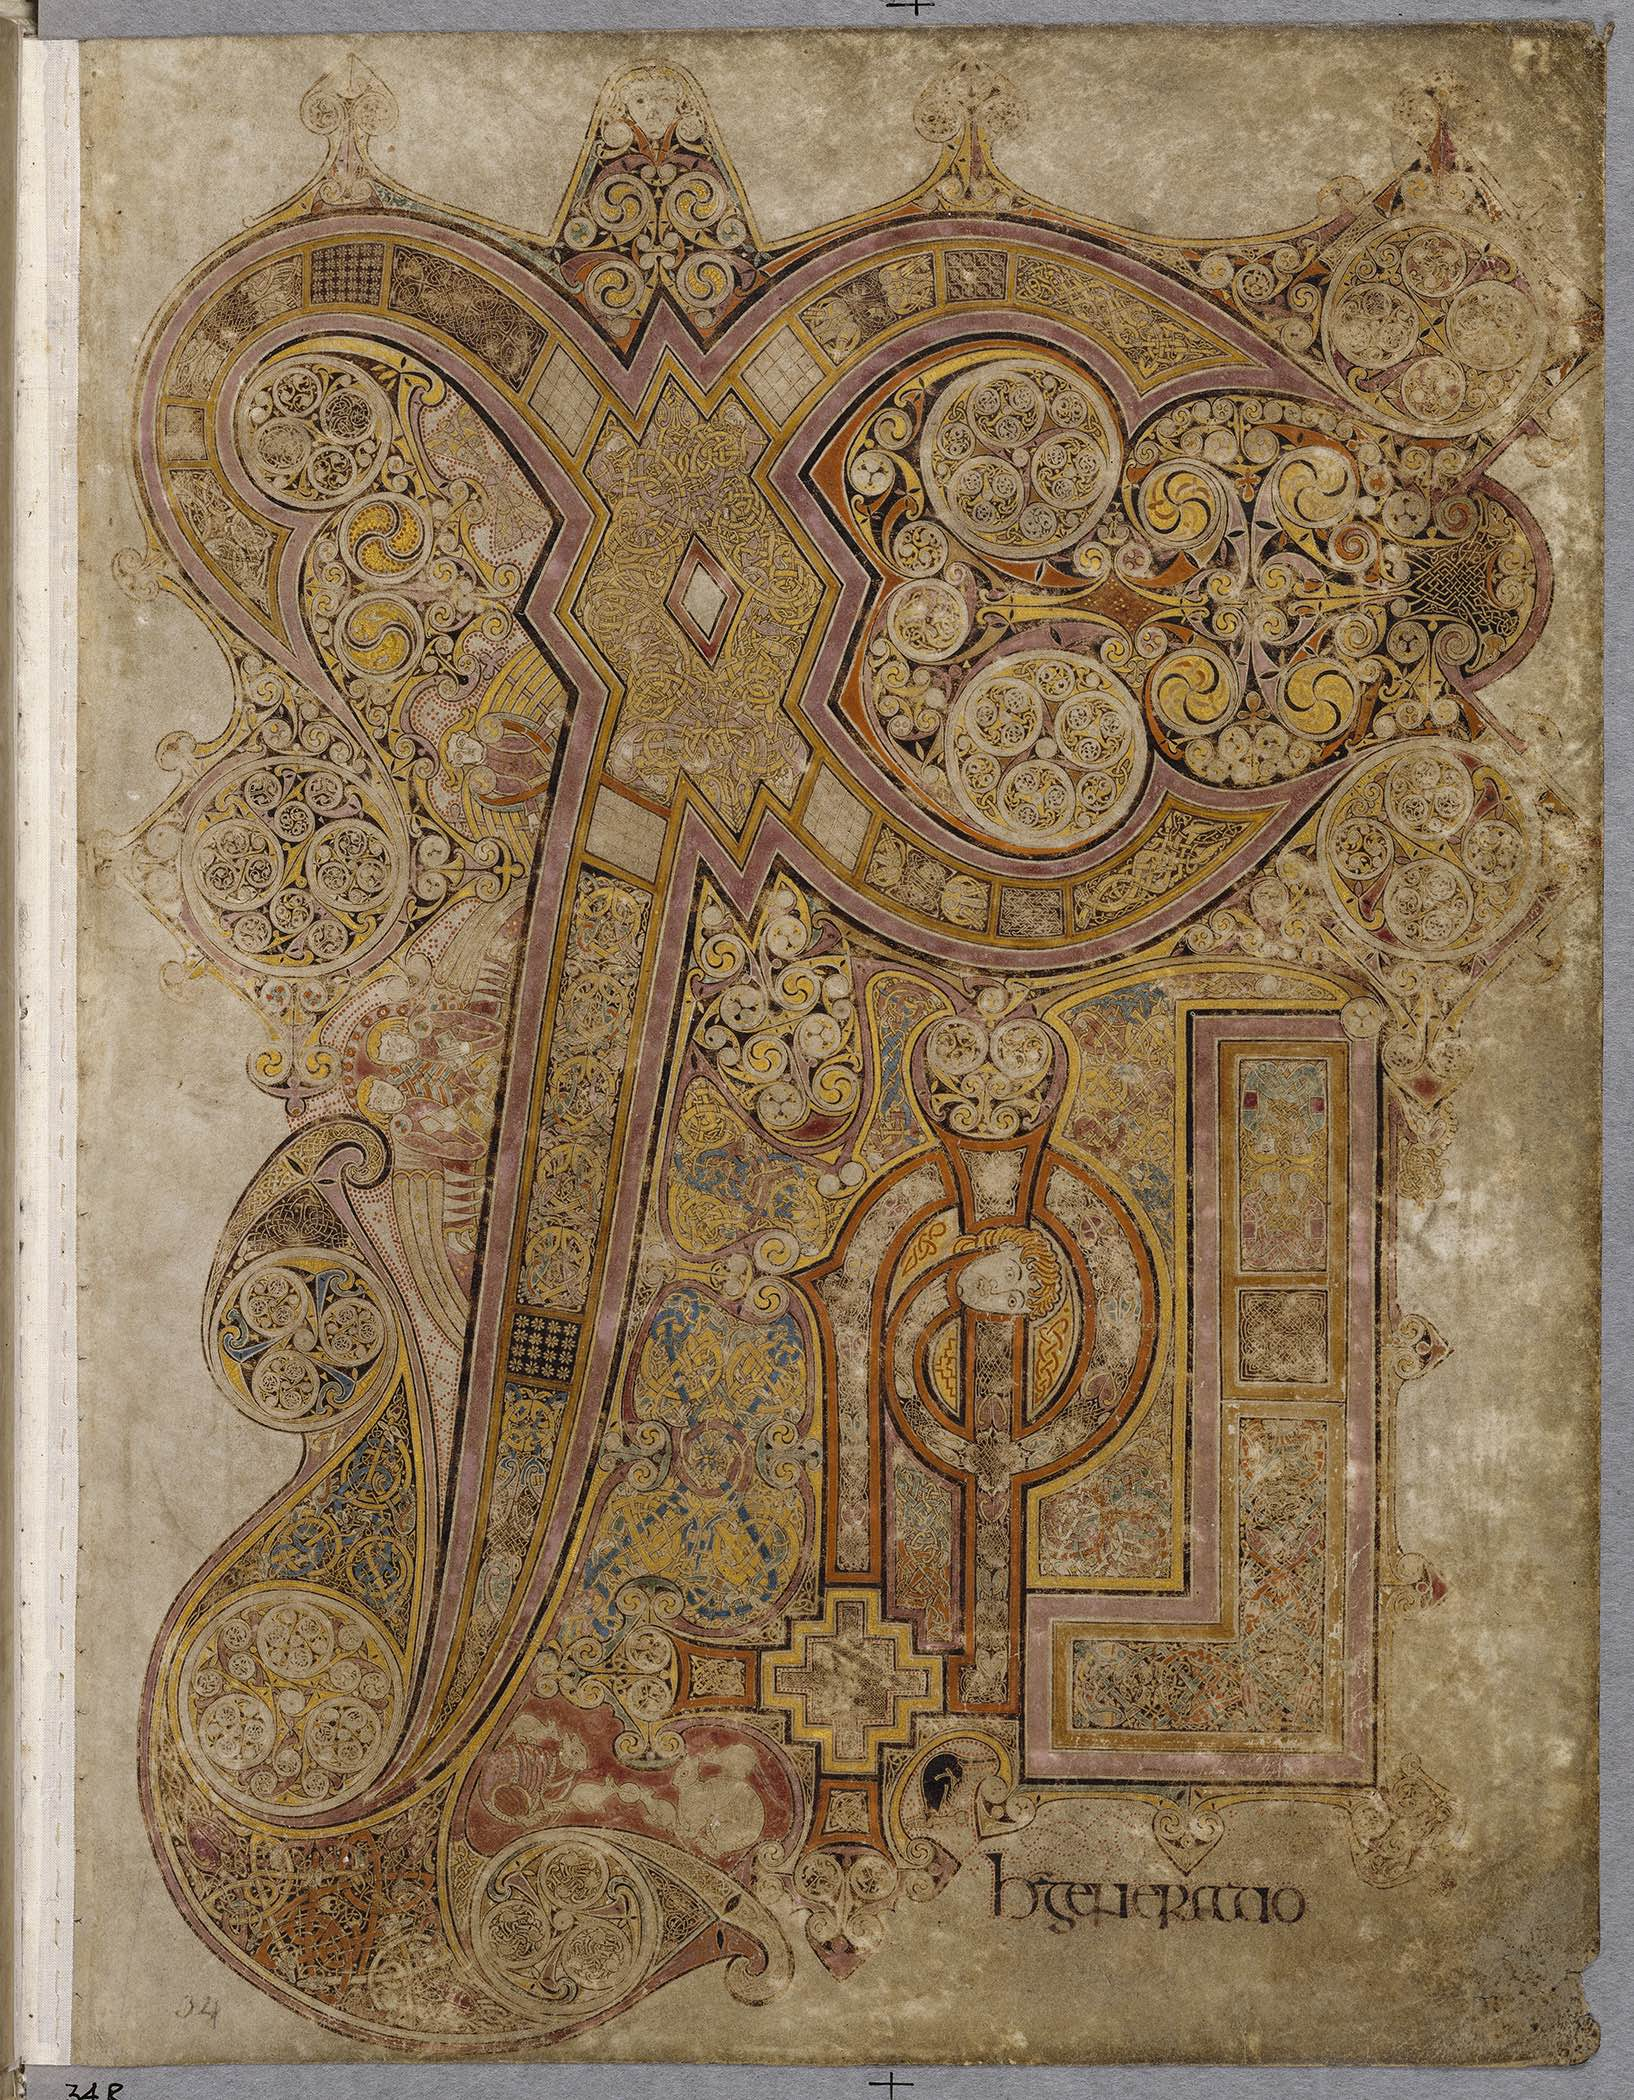 The Book Of Kells The River Sidethe River Side